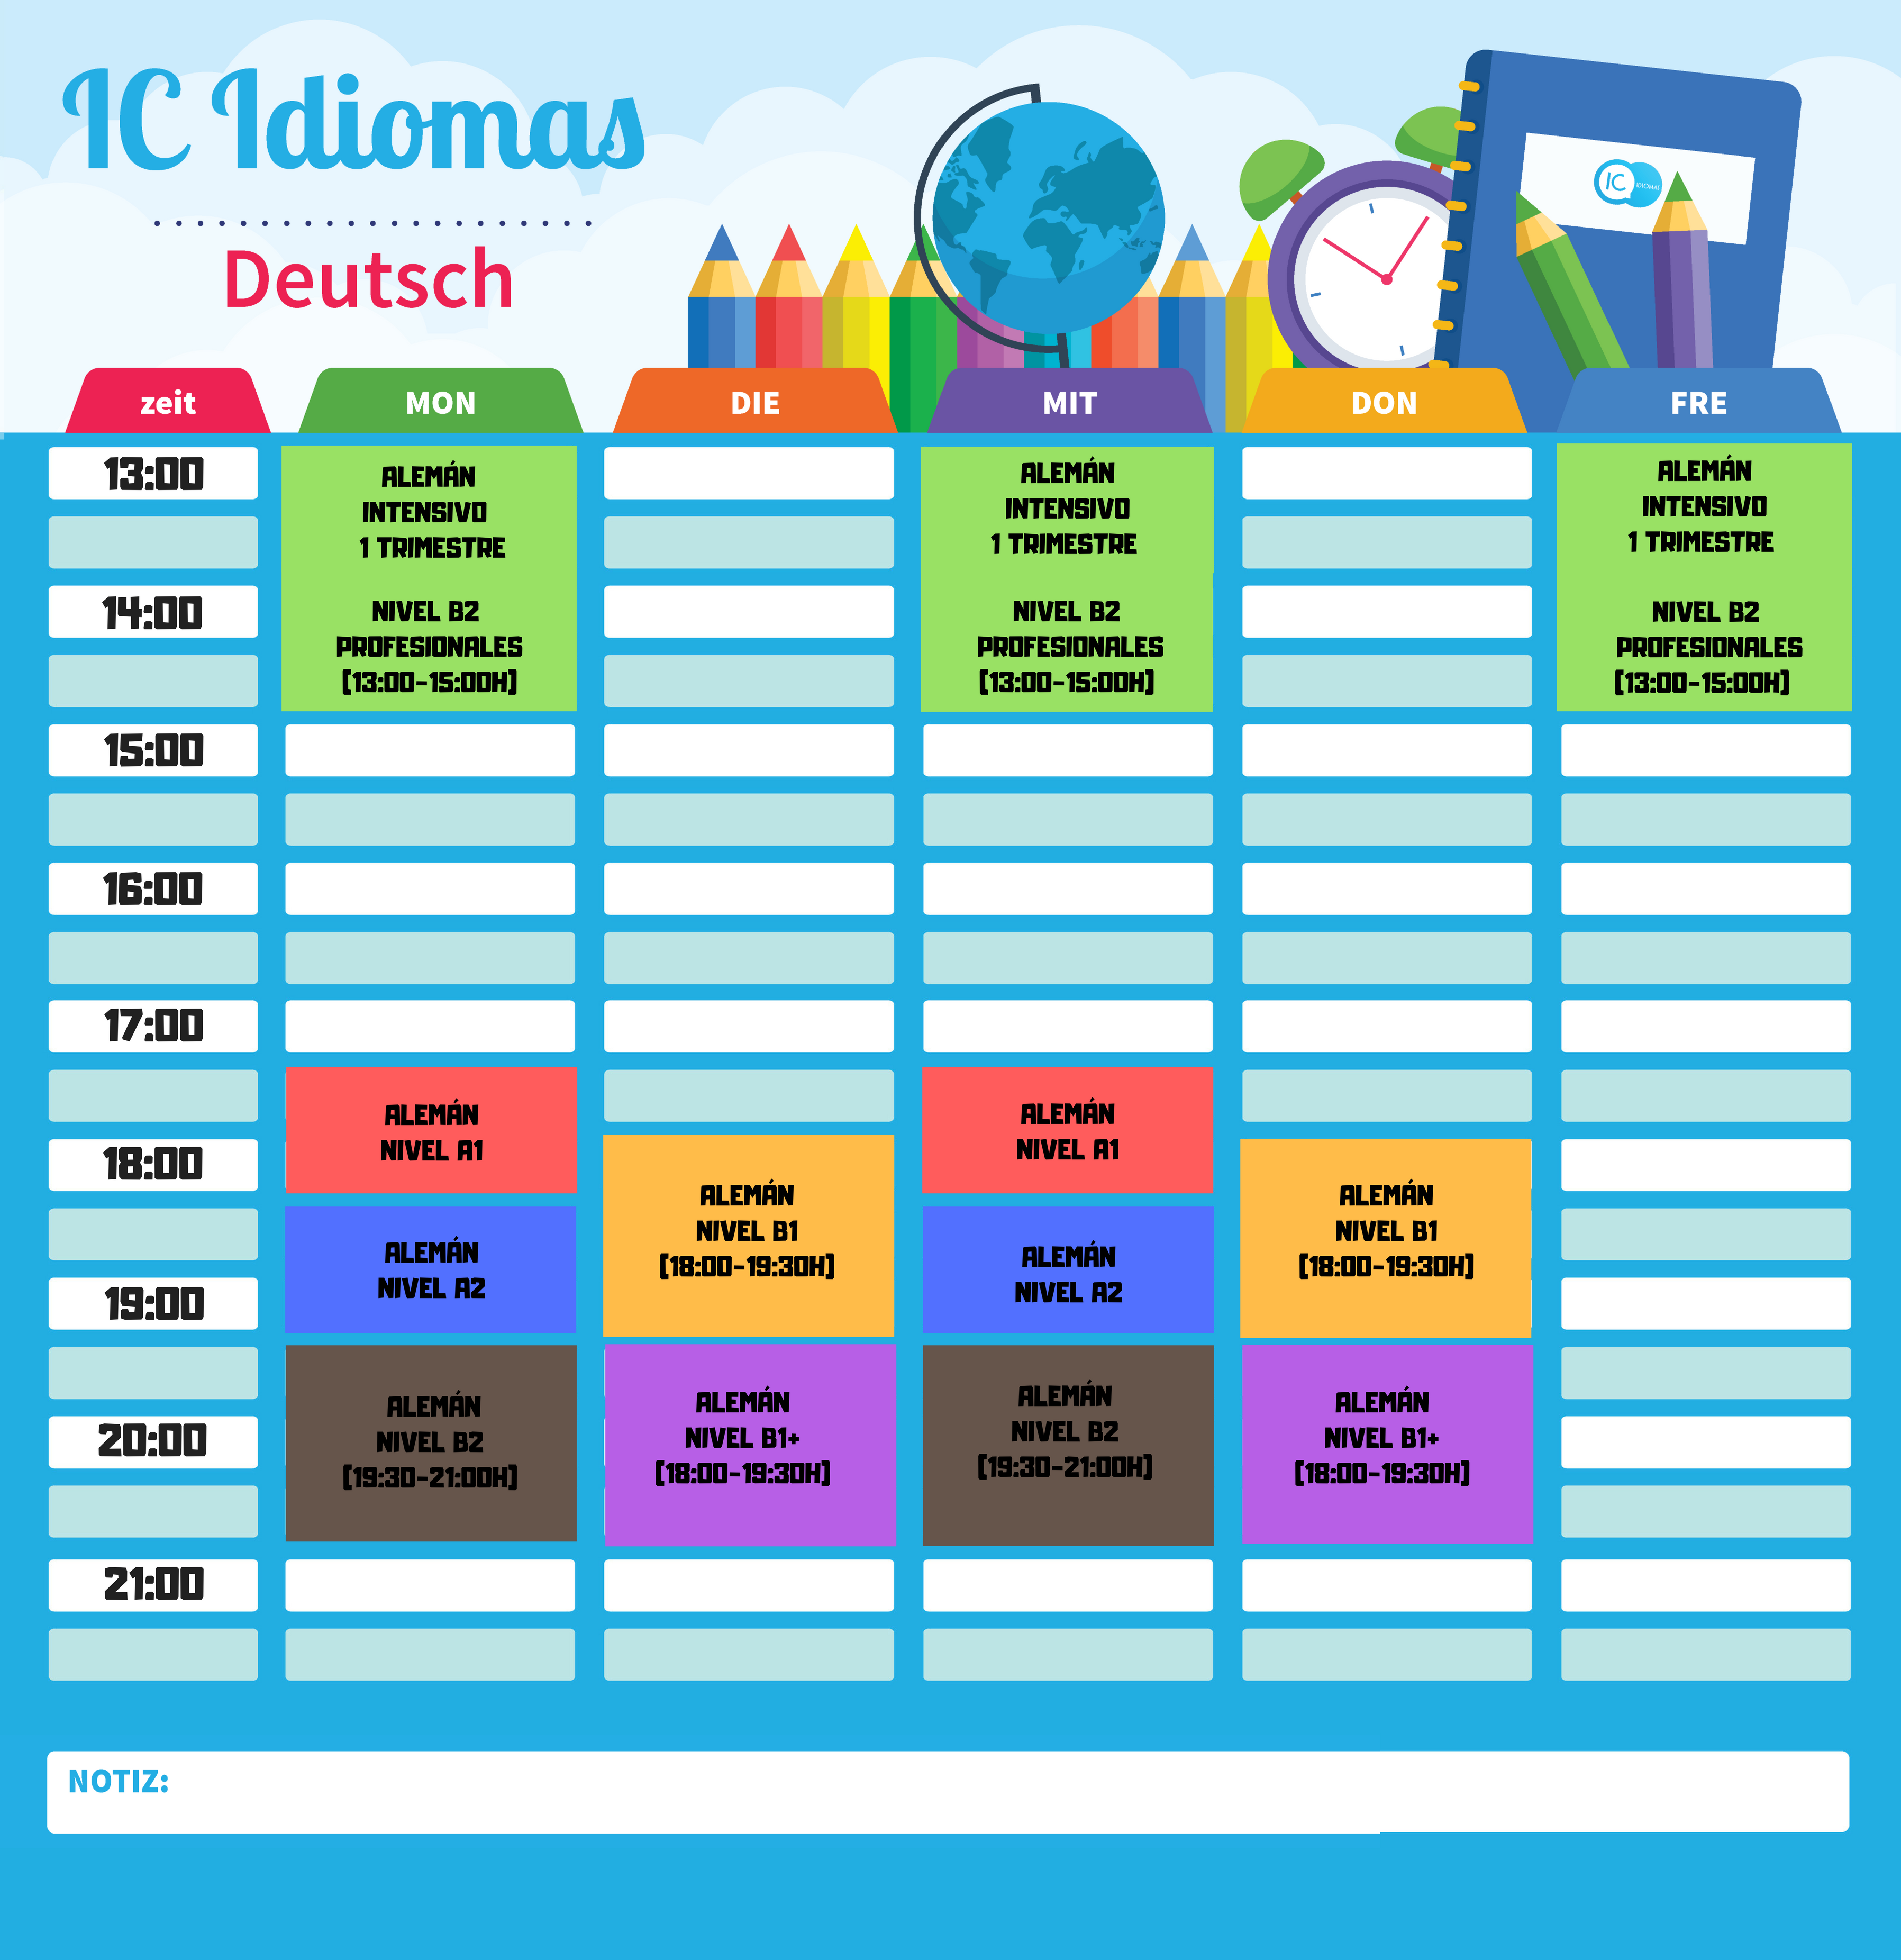 calendario alemán madrid